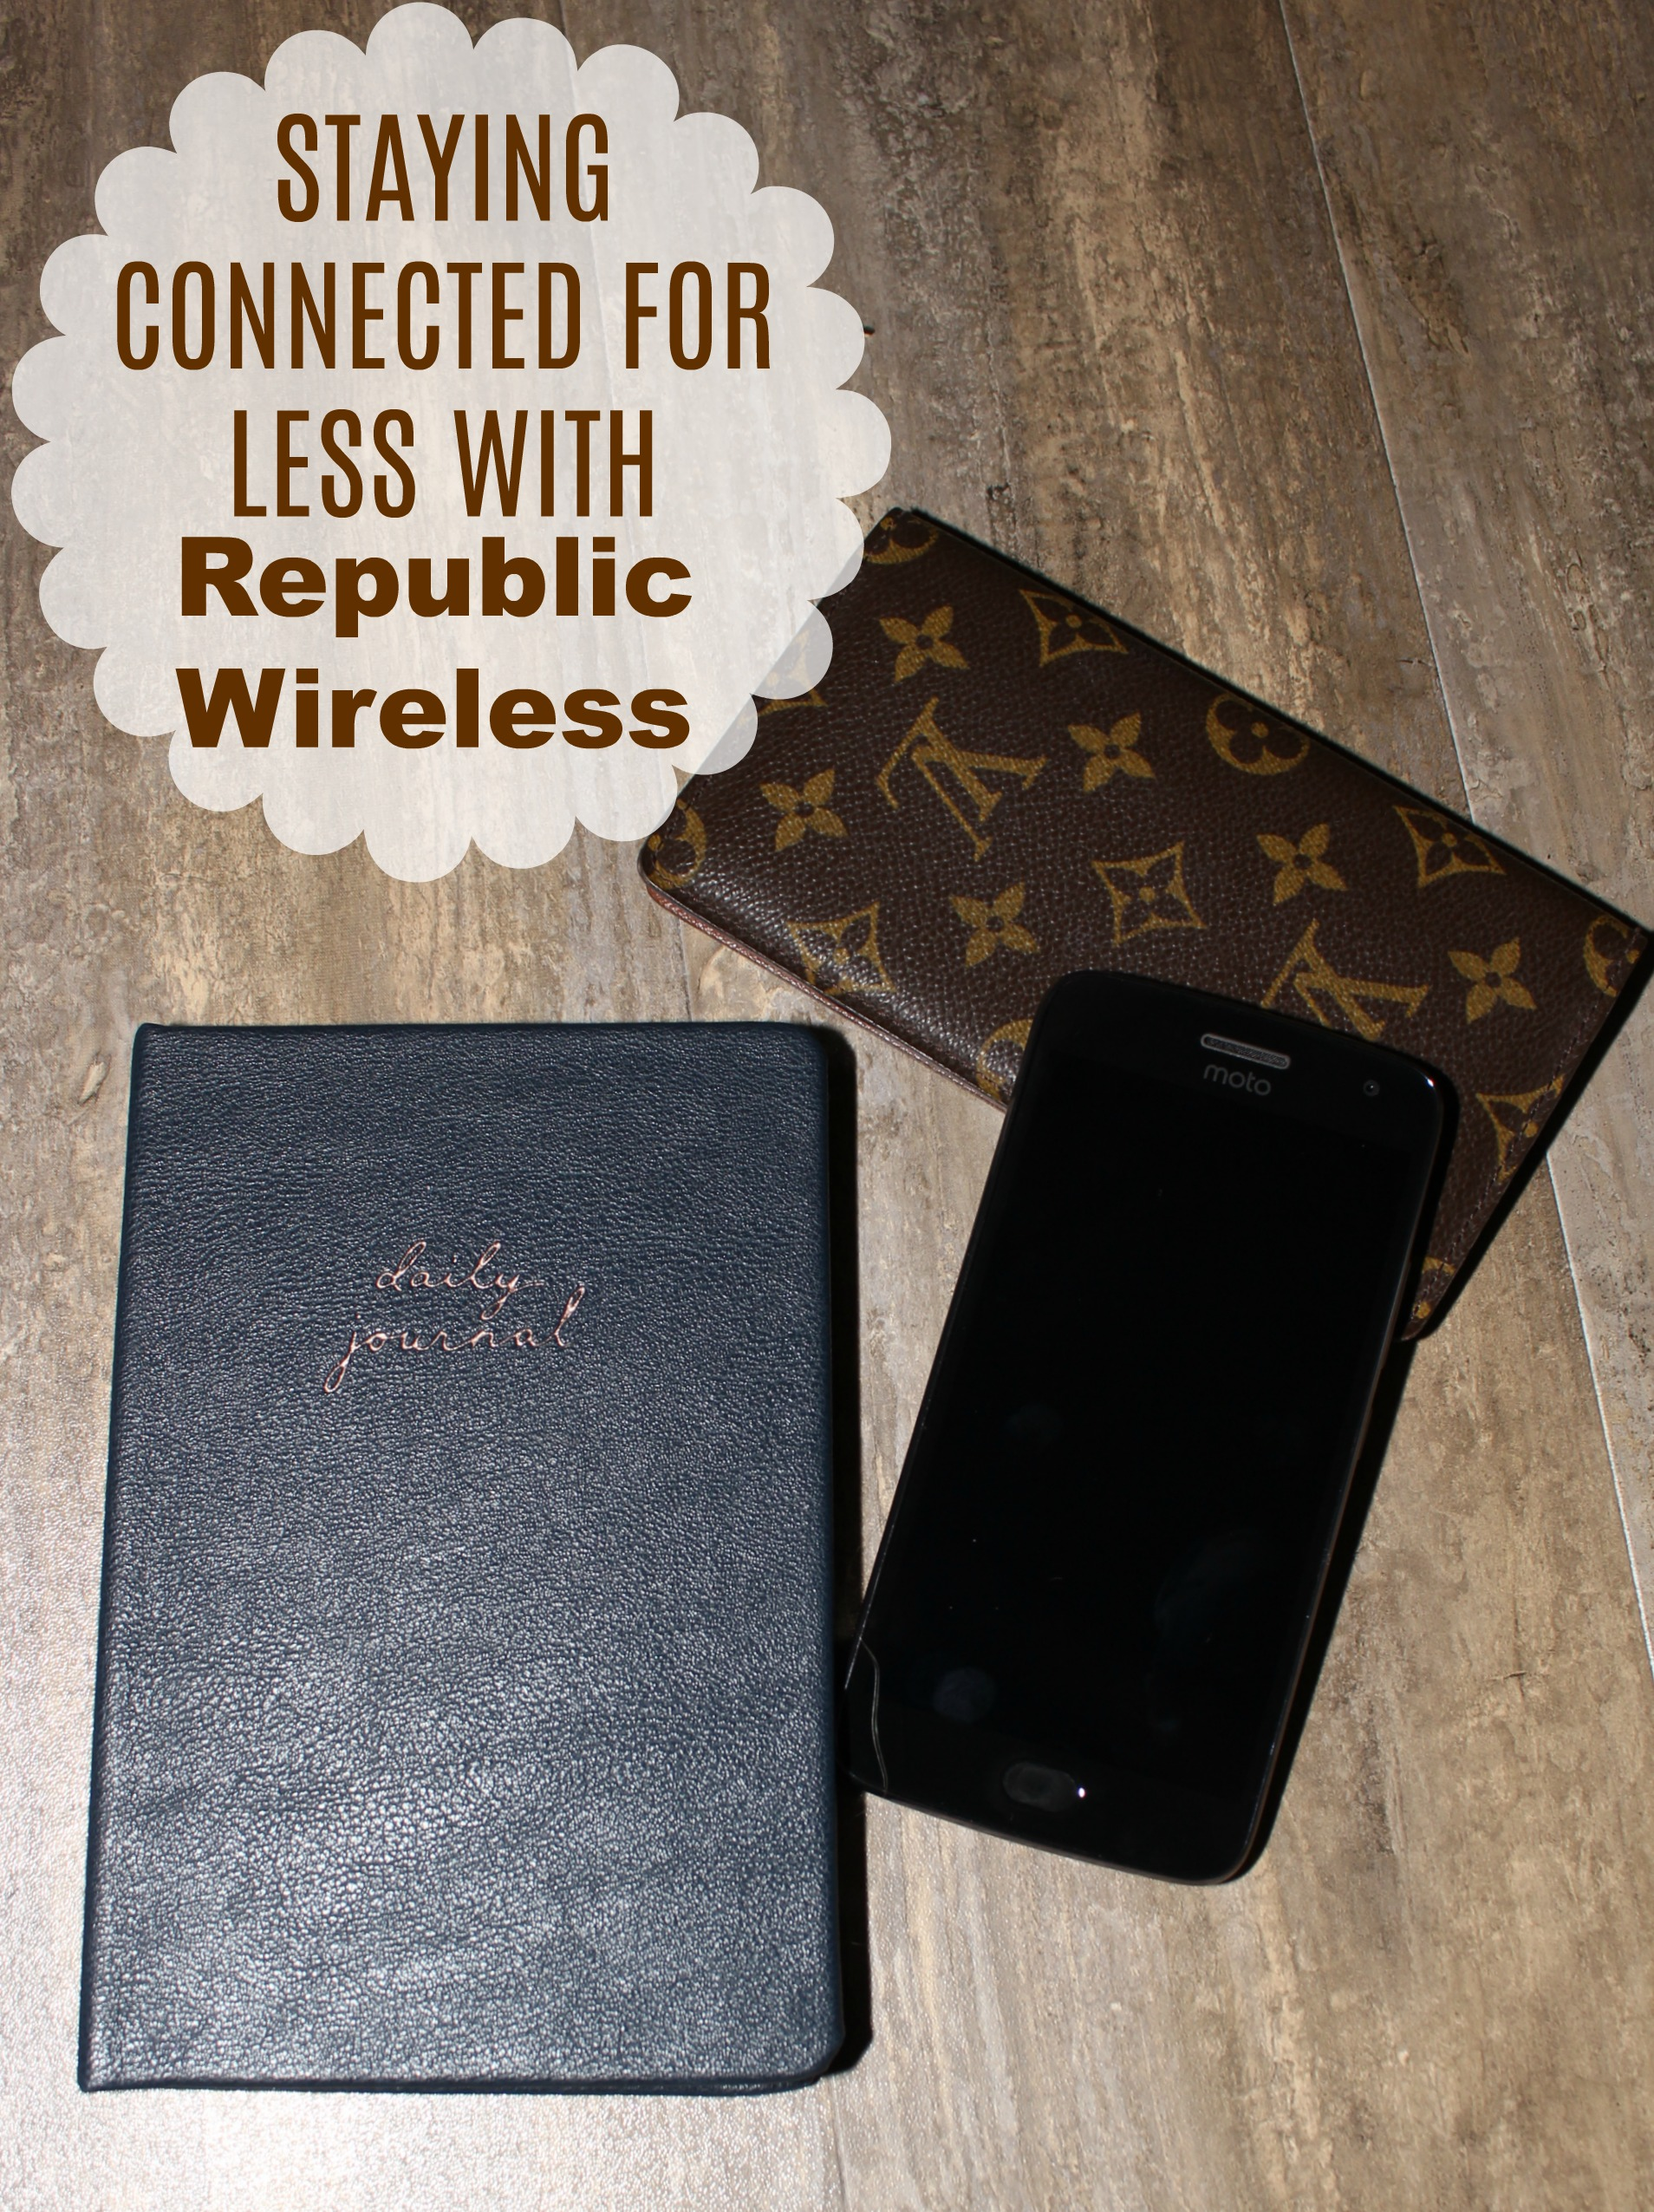 Staying Connected for Less with Republic Wireless